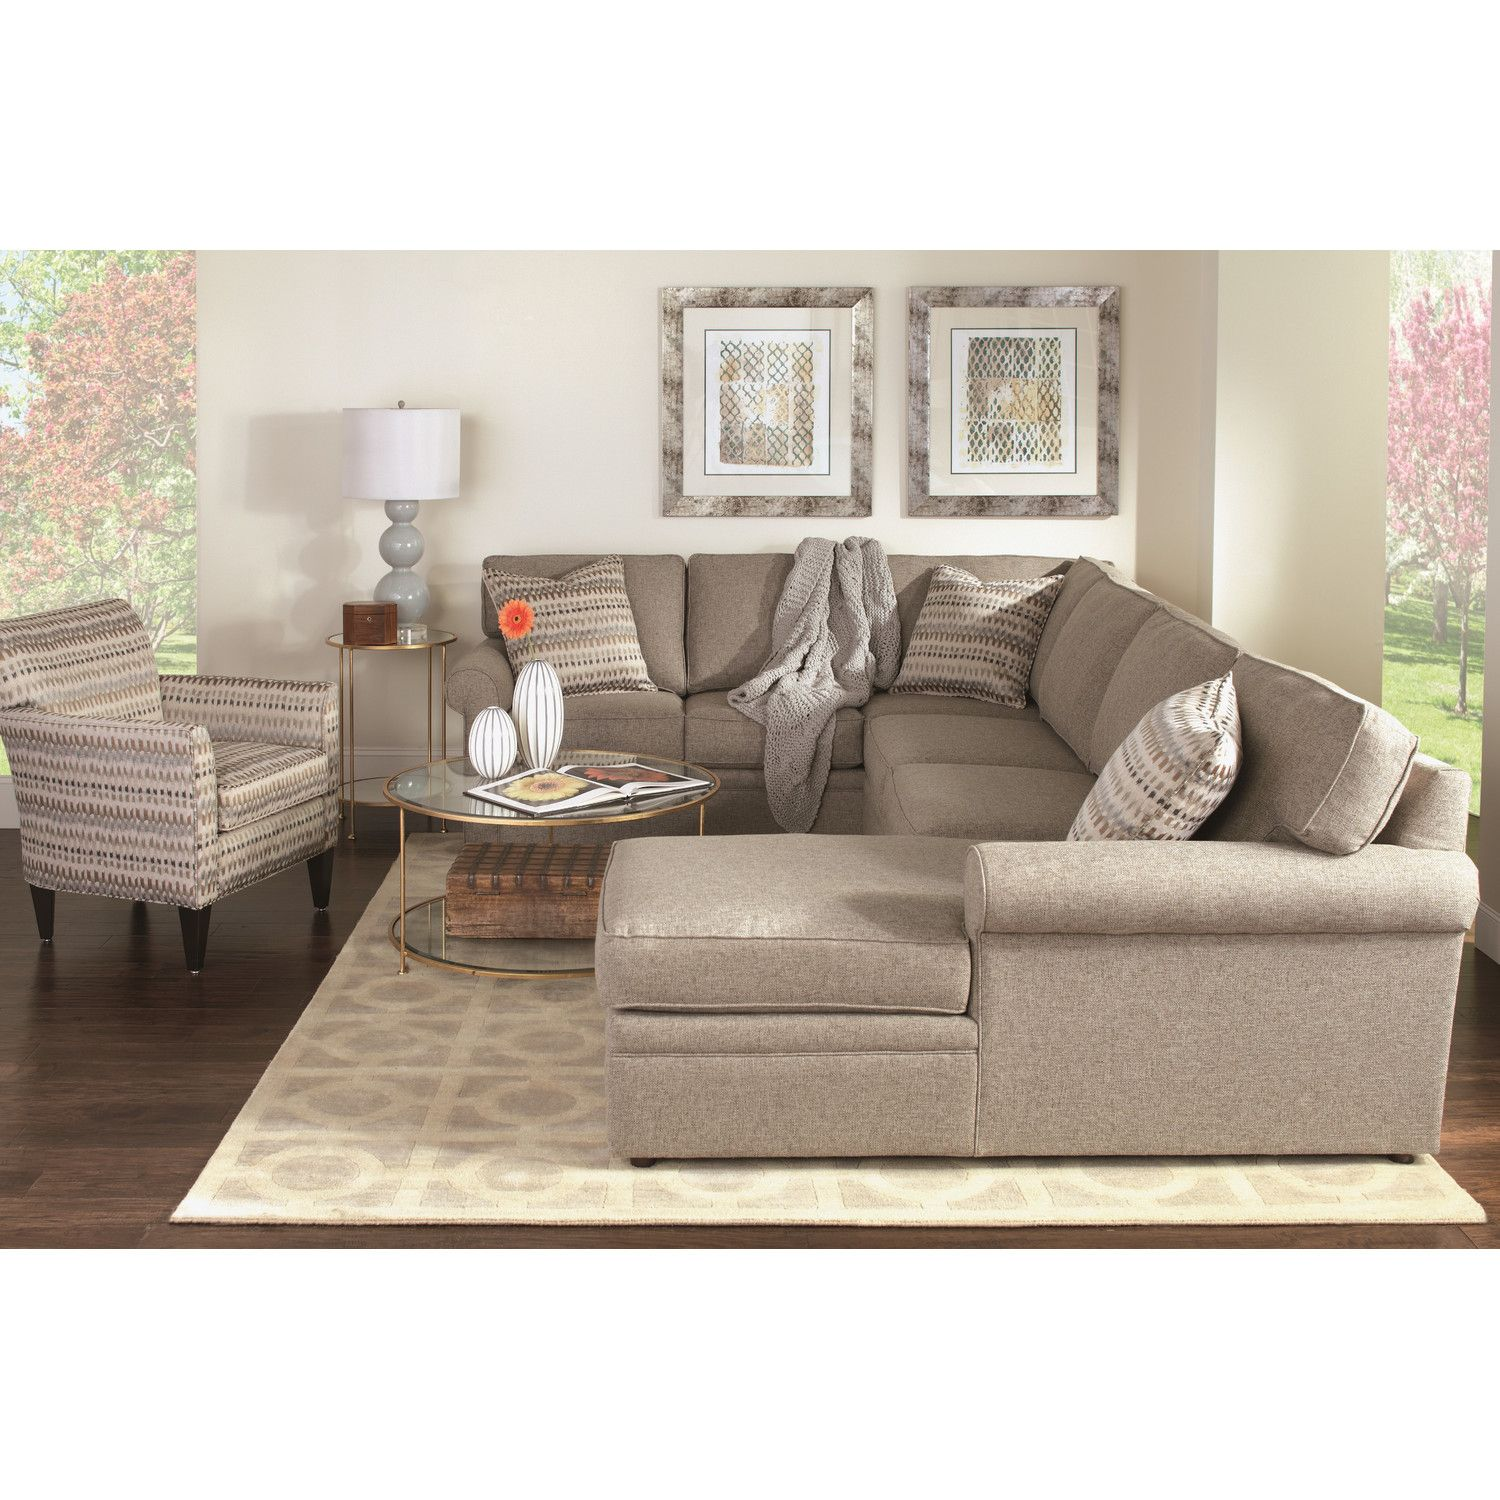 Cheap Furniture Brands: Rowe Furniture Brentwood Sectional